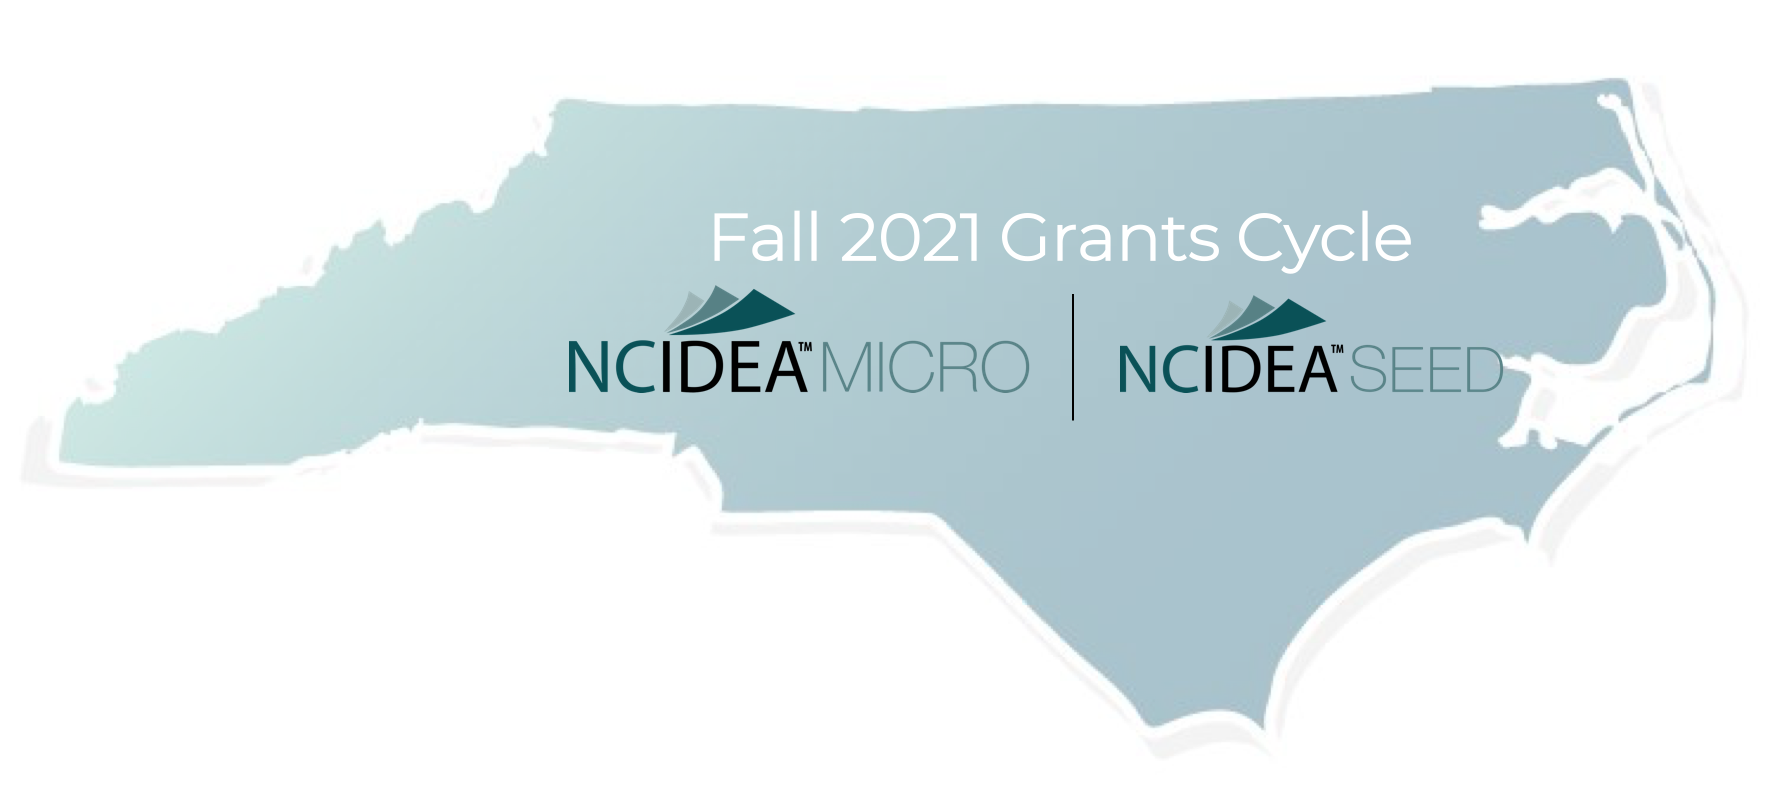 Attend a Fall 2021 Grants Info Session